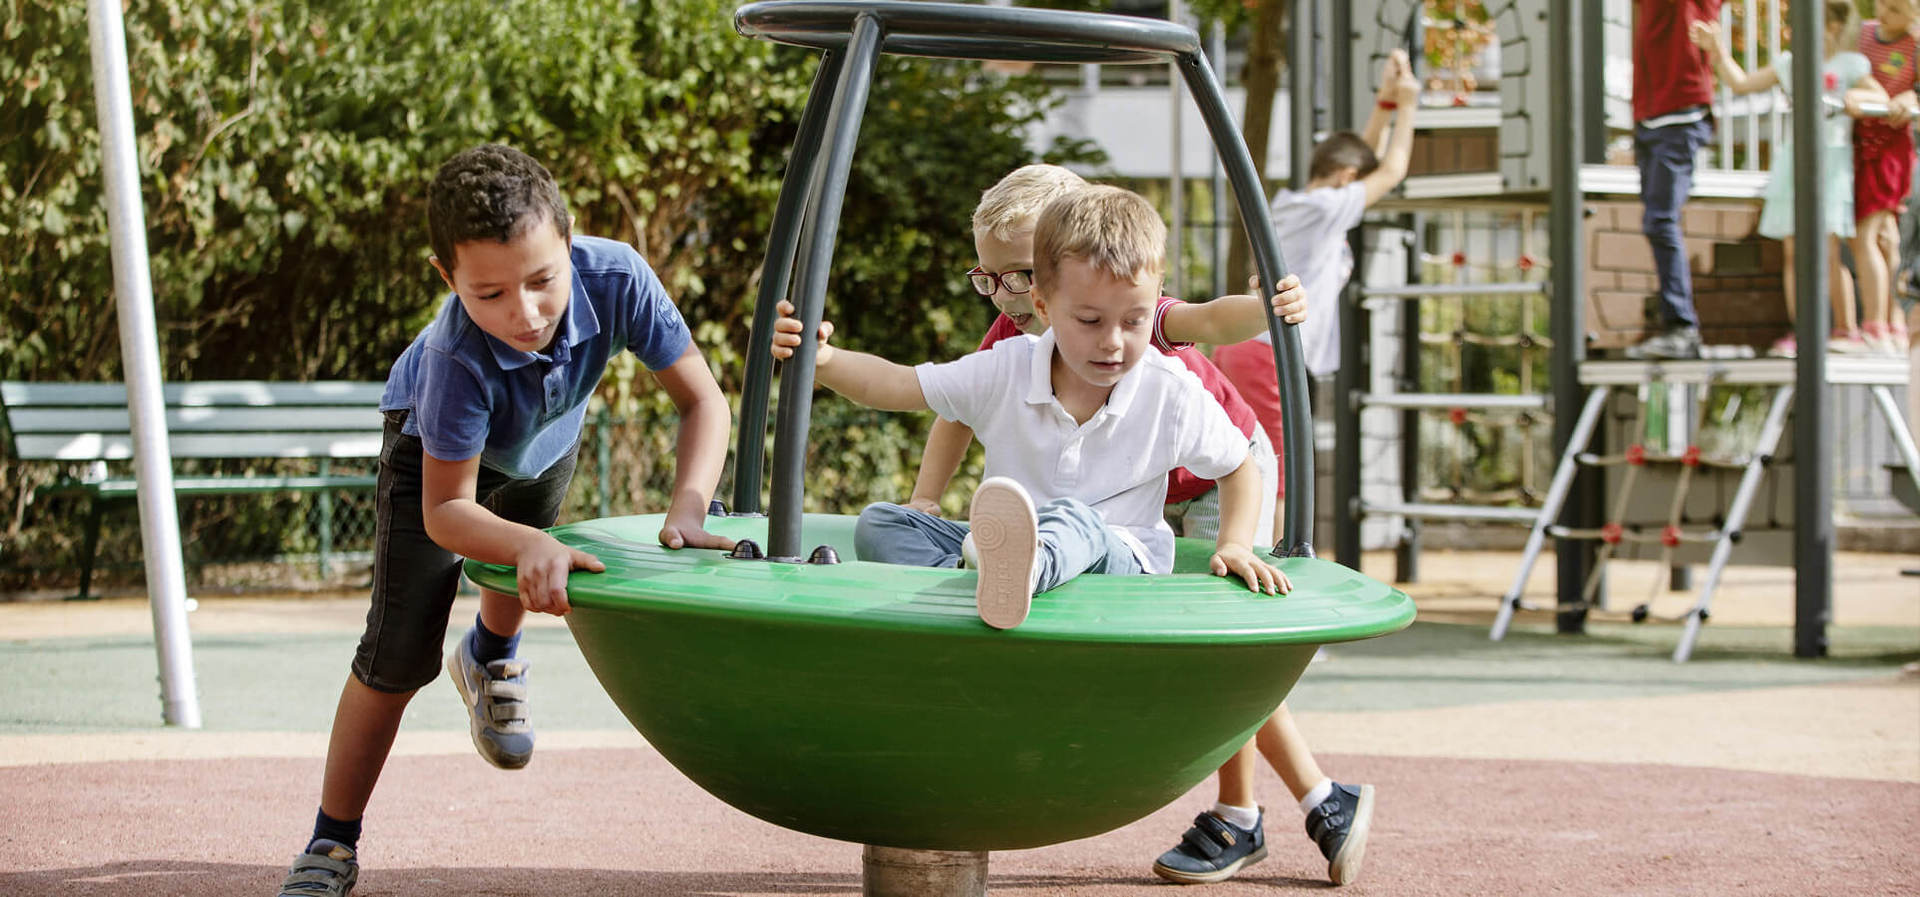 Freestanding Play Equipment